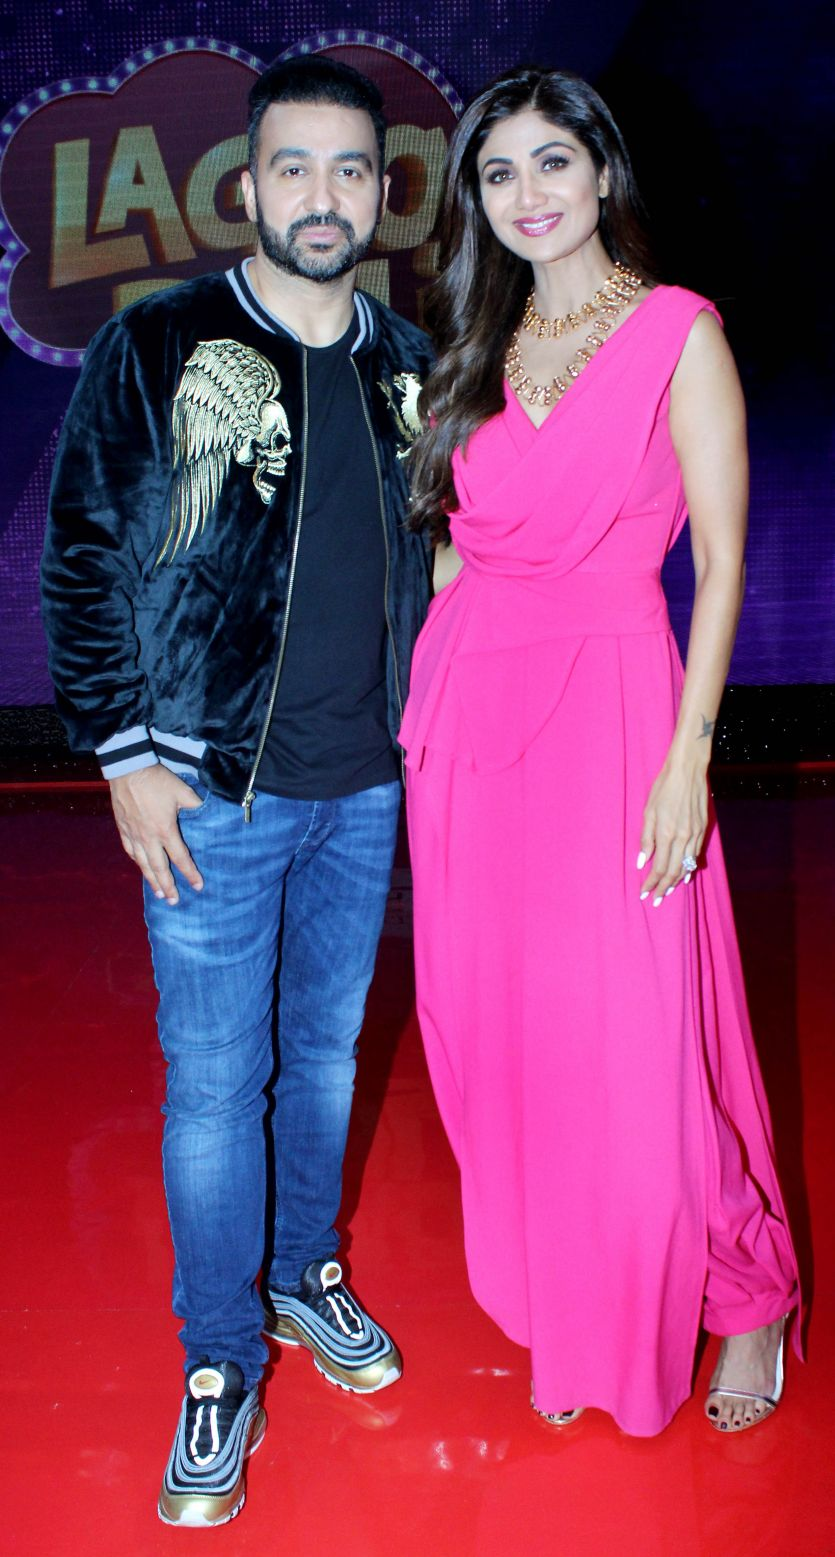 Shilpa Shetty in Designer Dress from Tarun Tahiliani's Collection